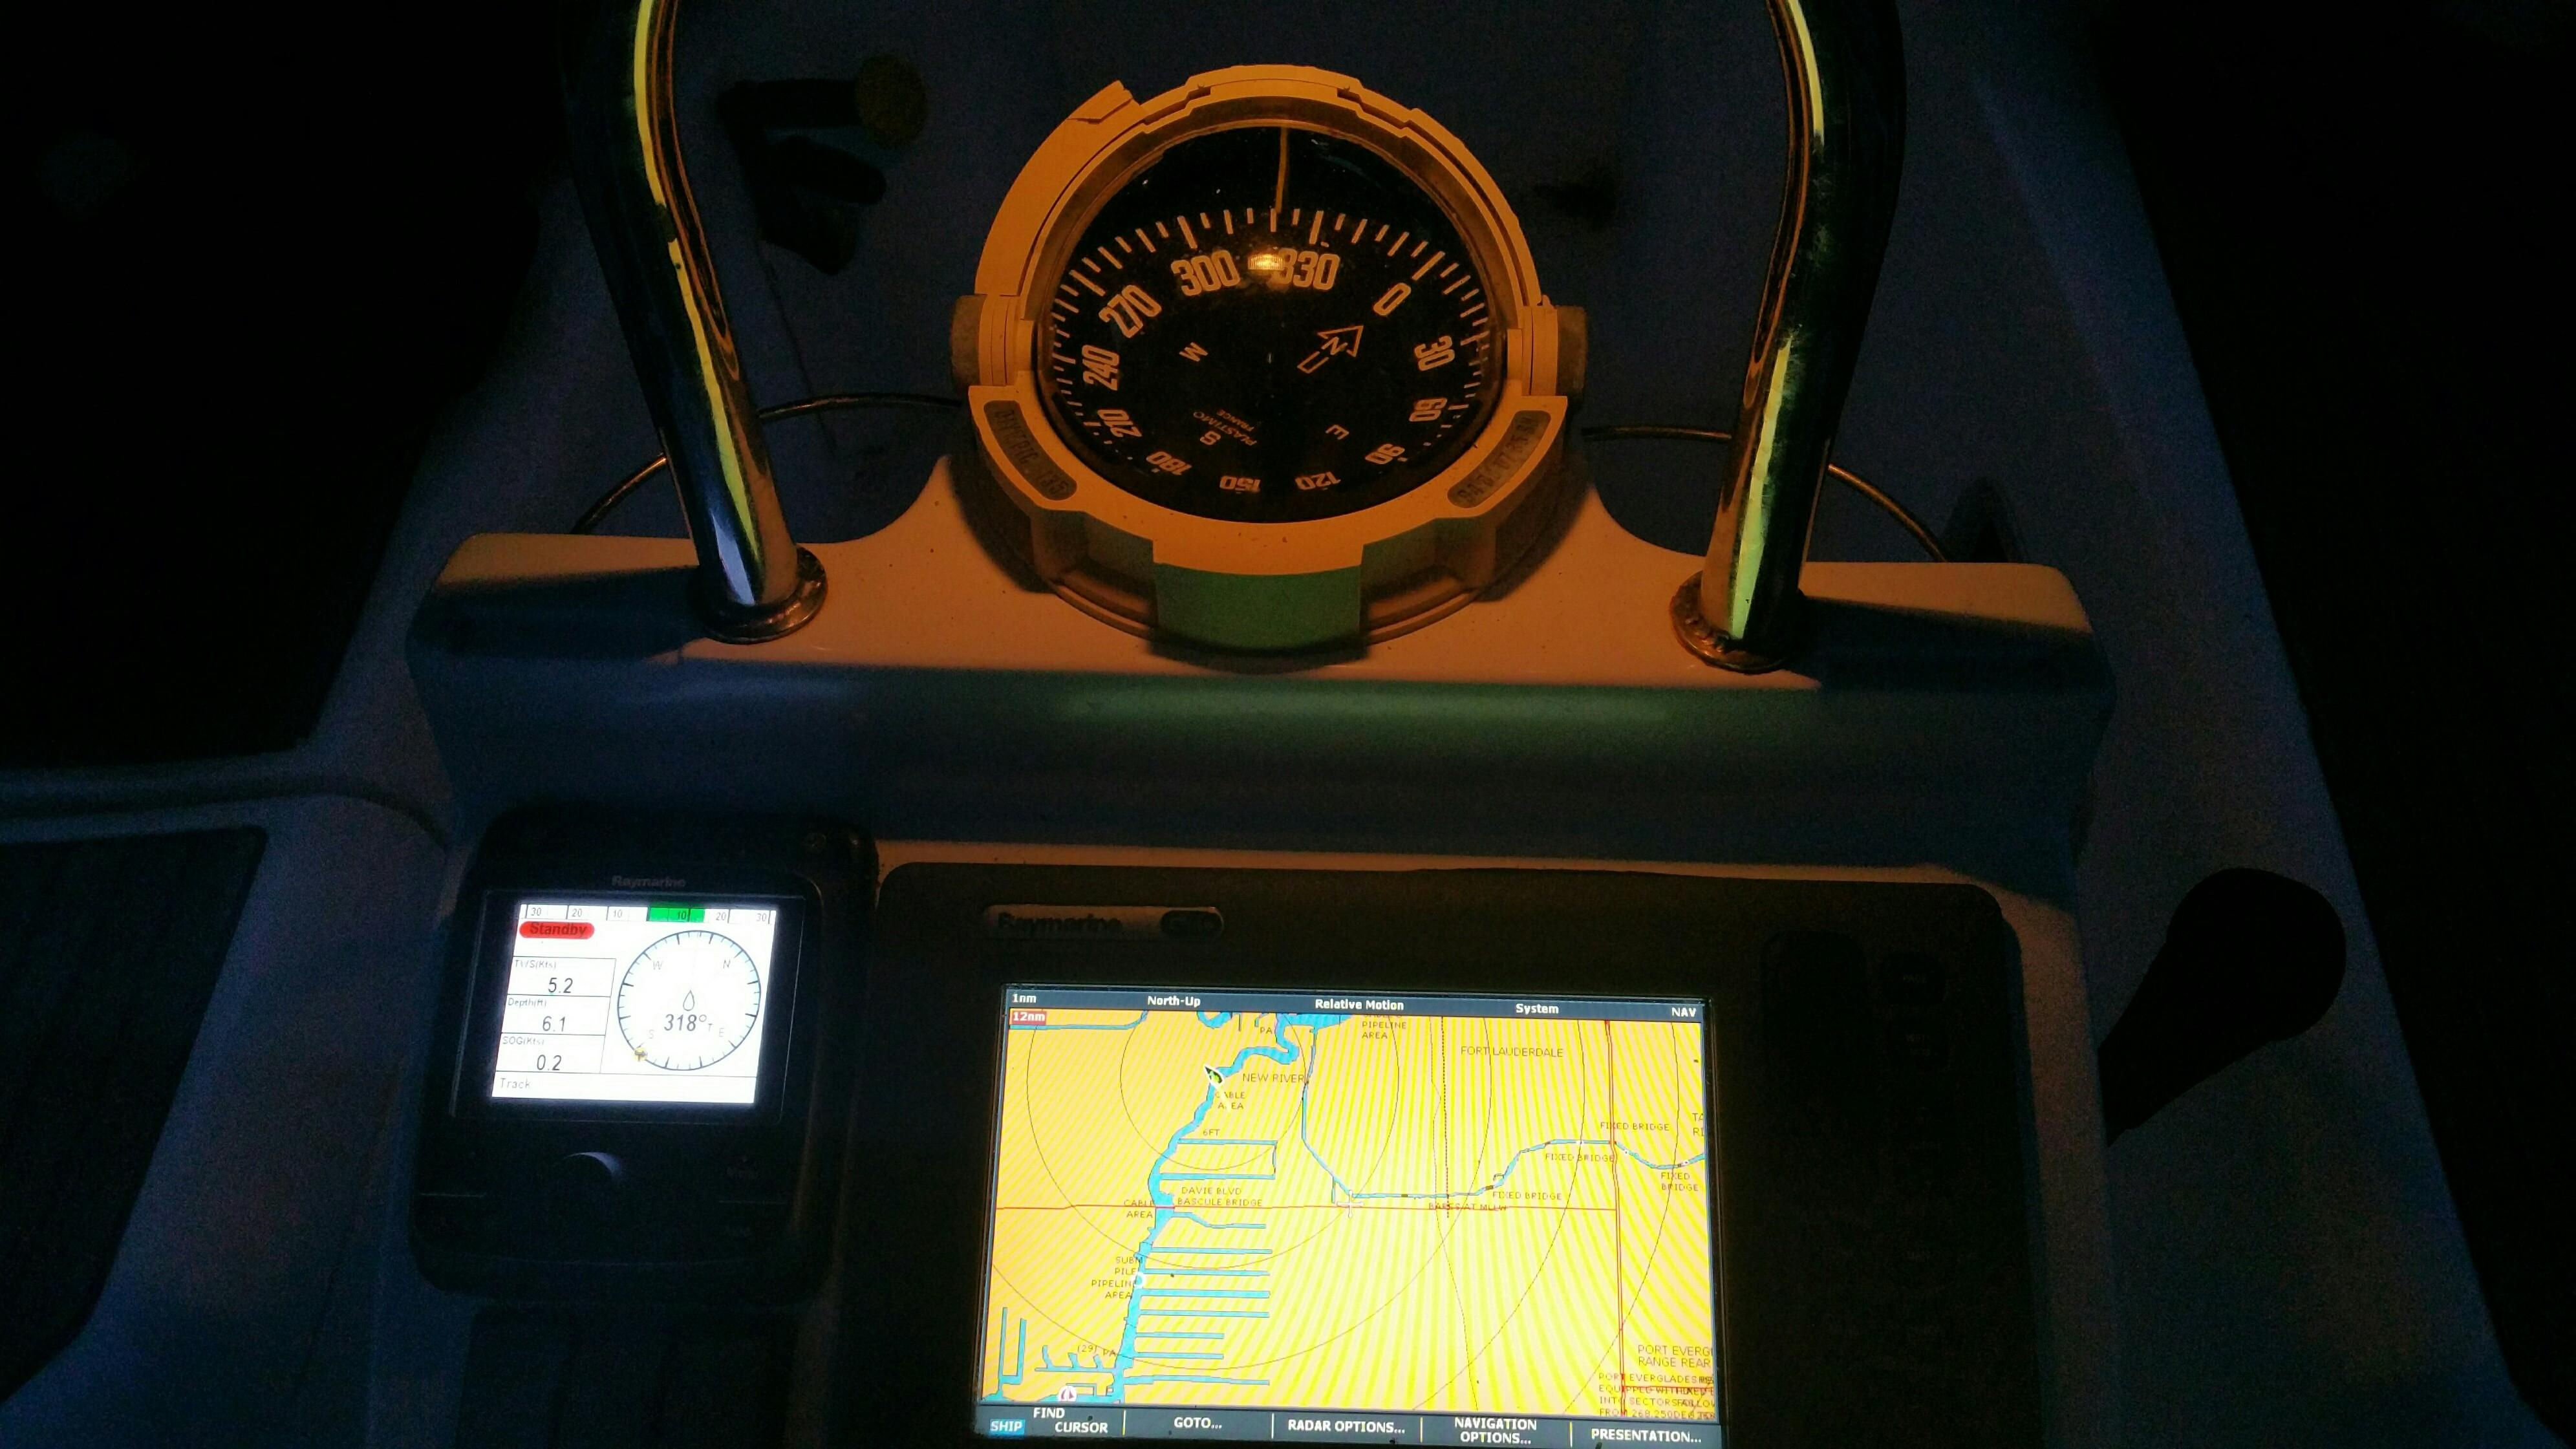 36 Beneteau Chart Plotter at helm